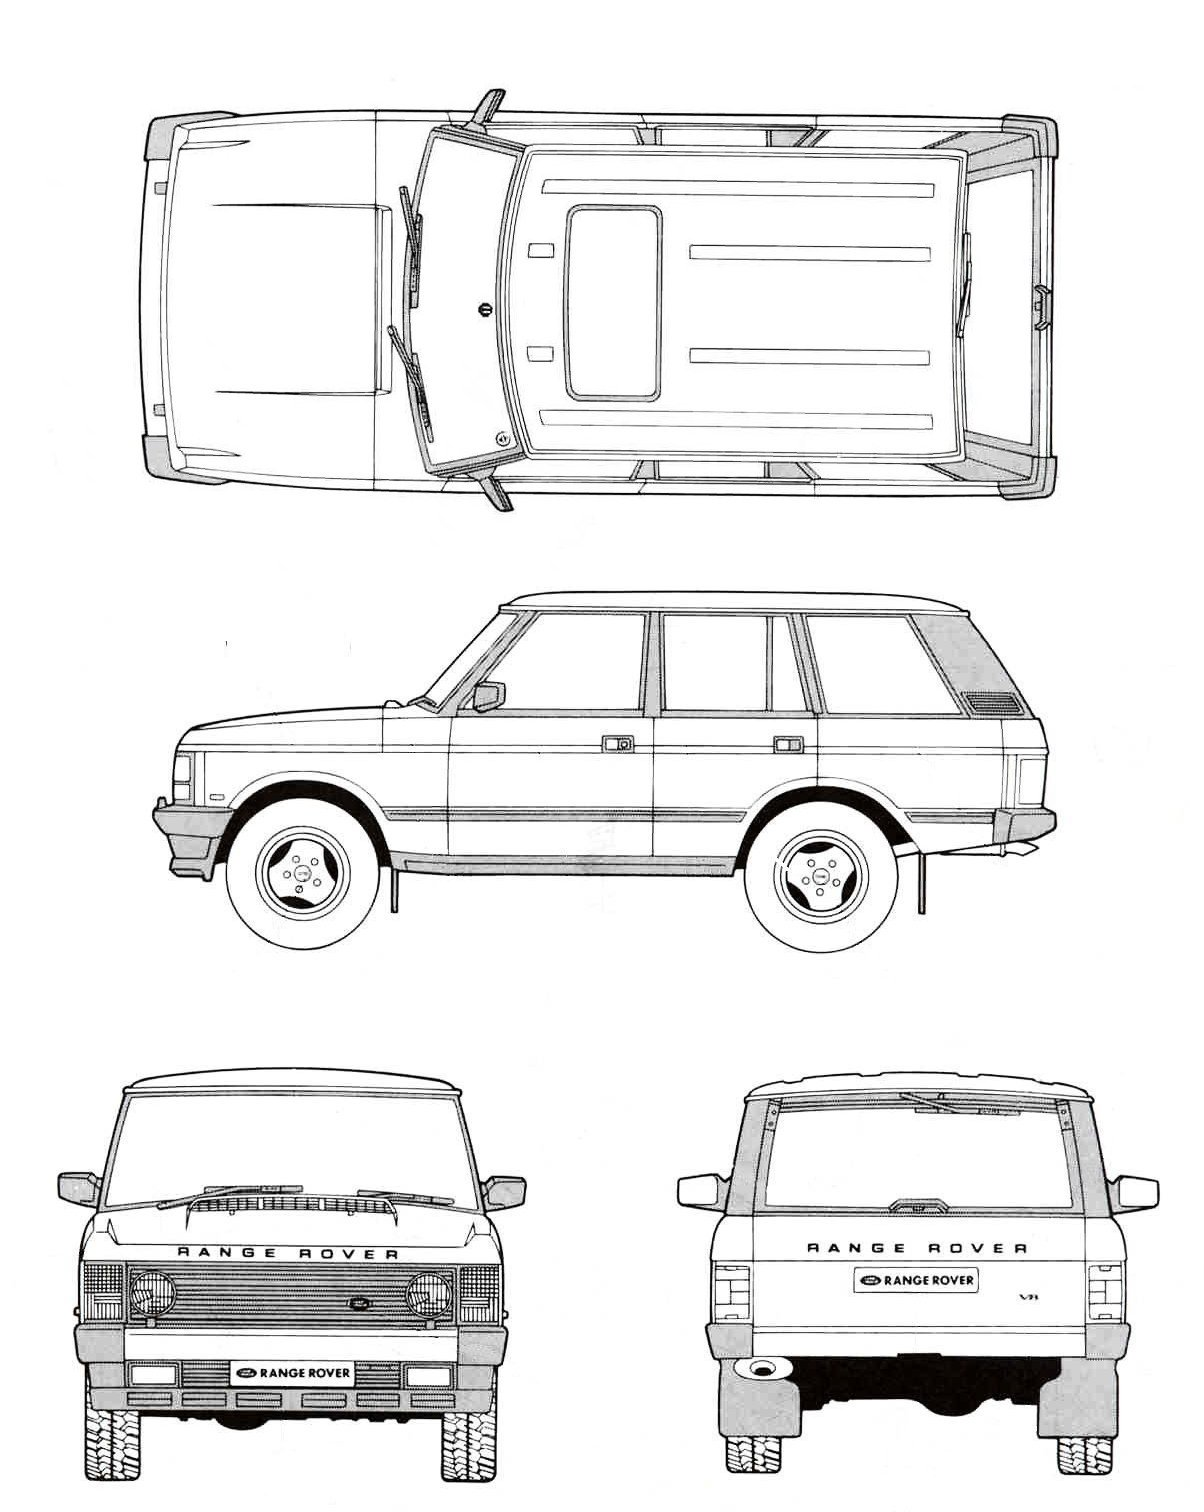 Land Rover Range Rover Blueprint